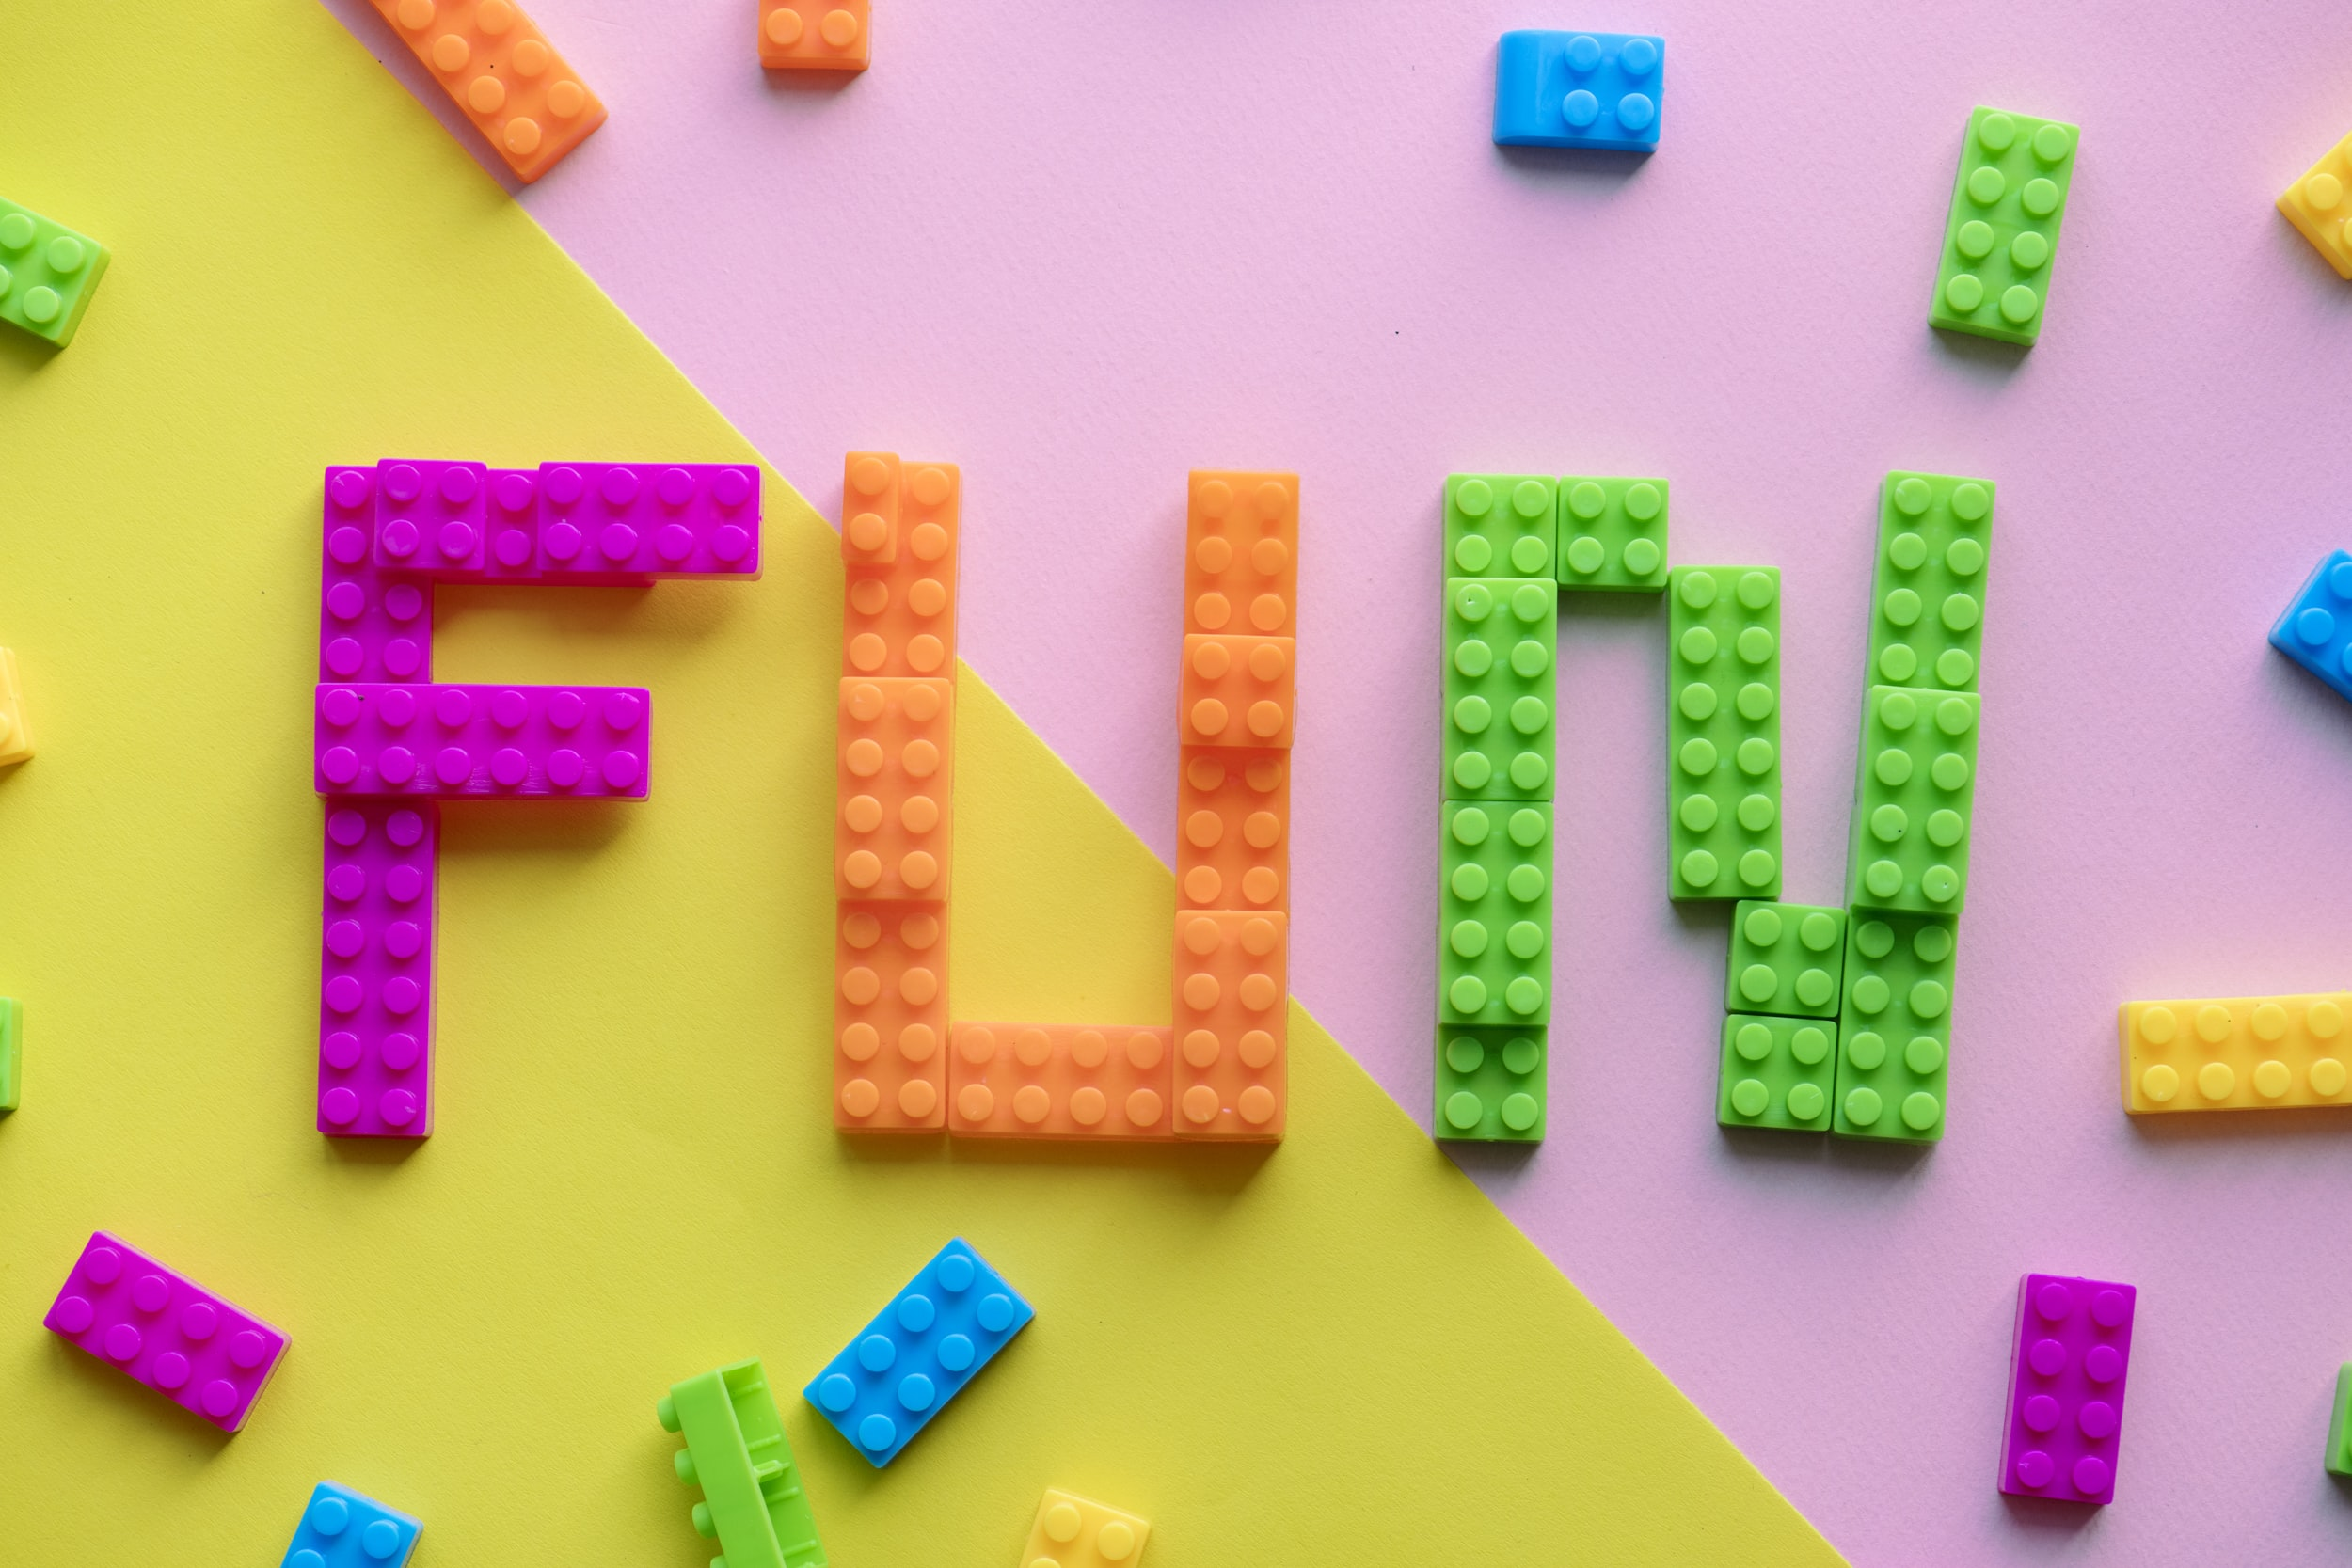 pink orange and green blocks formed into the word fun on flat surface